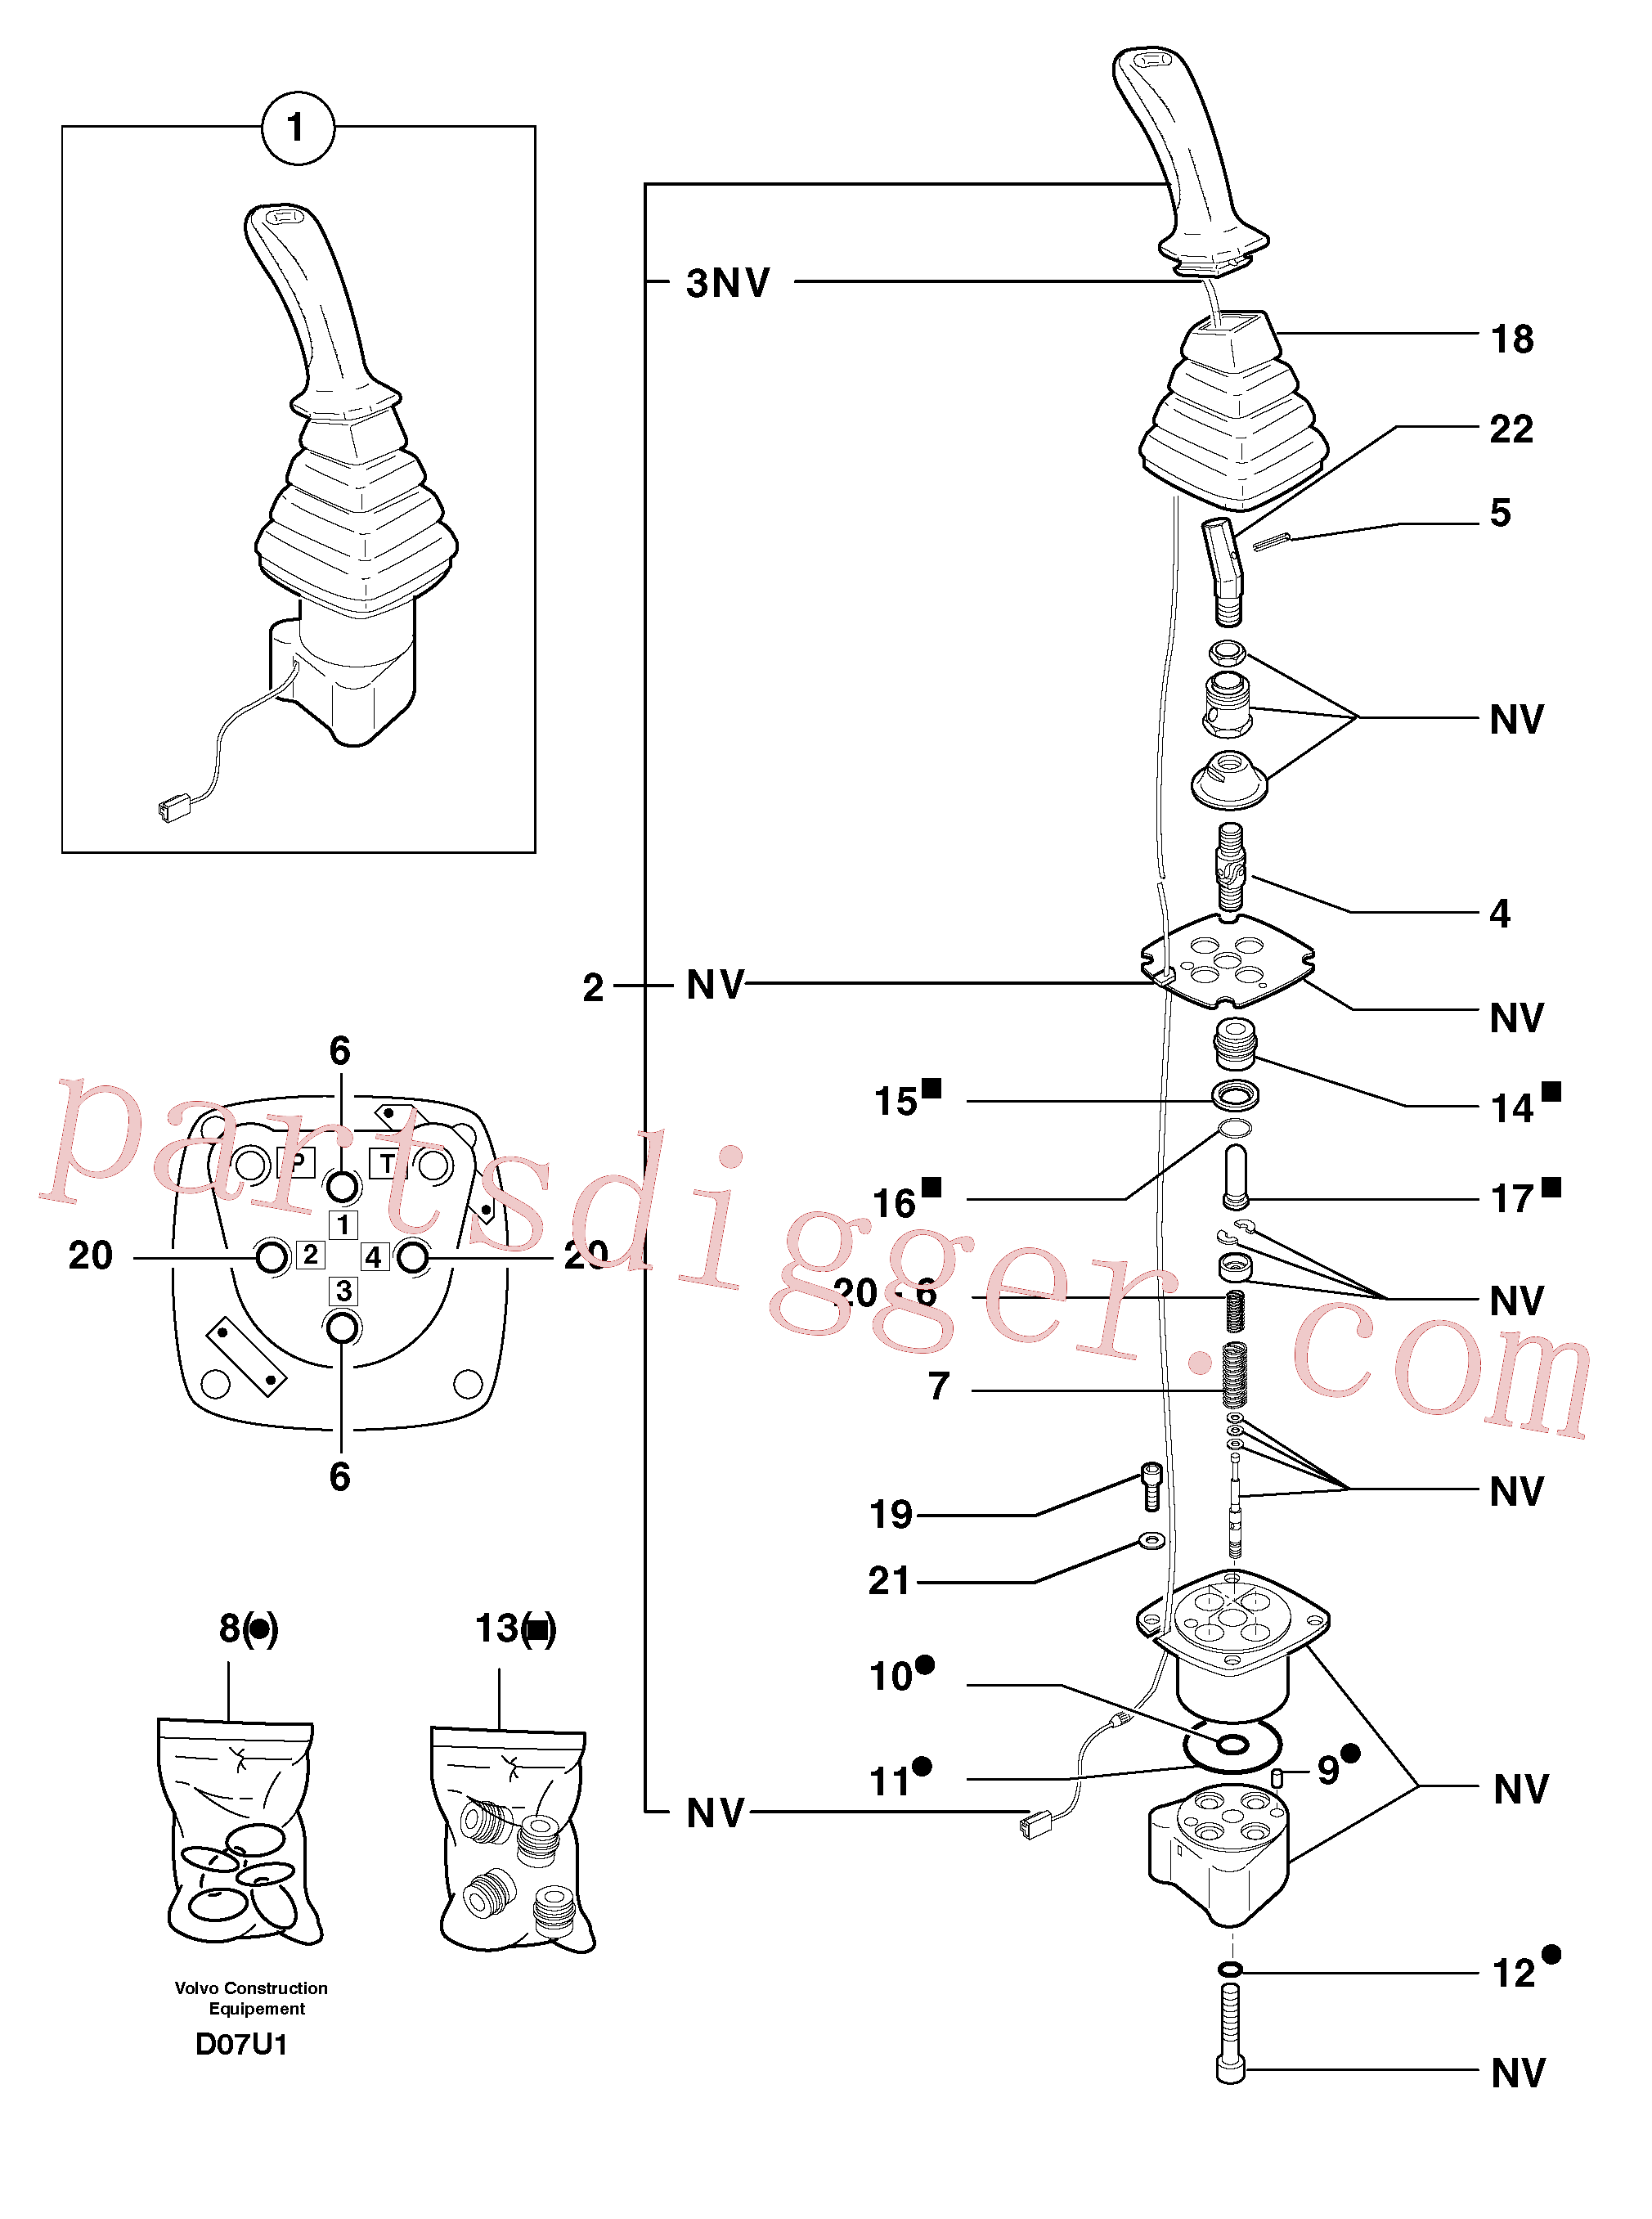 PJ4290007 for Volvo Control lever : dipper arm / slewing ( left )(D07U1 assembly)